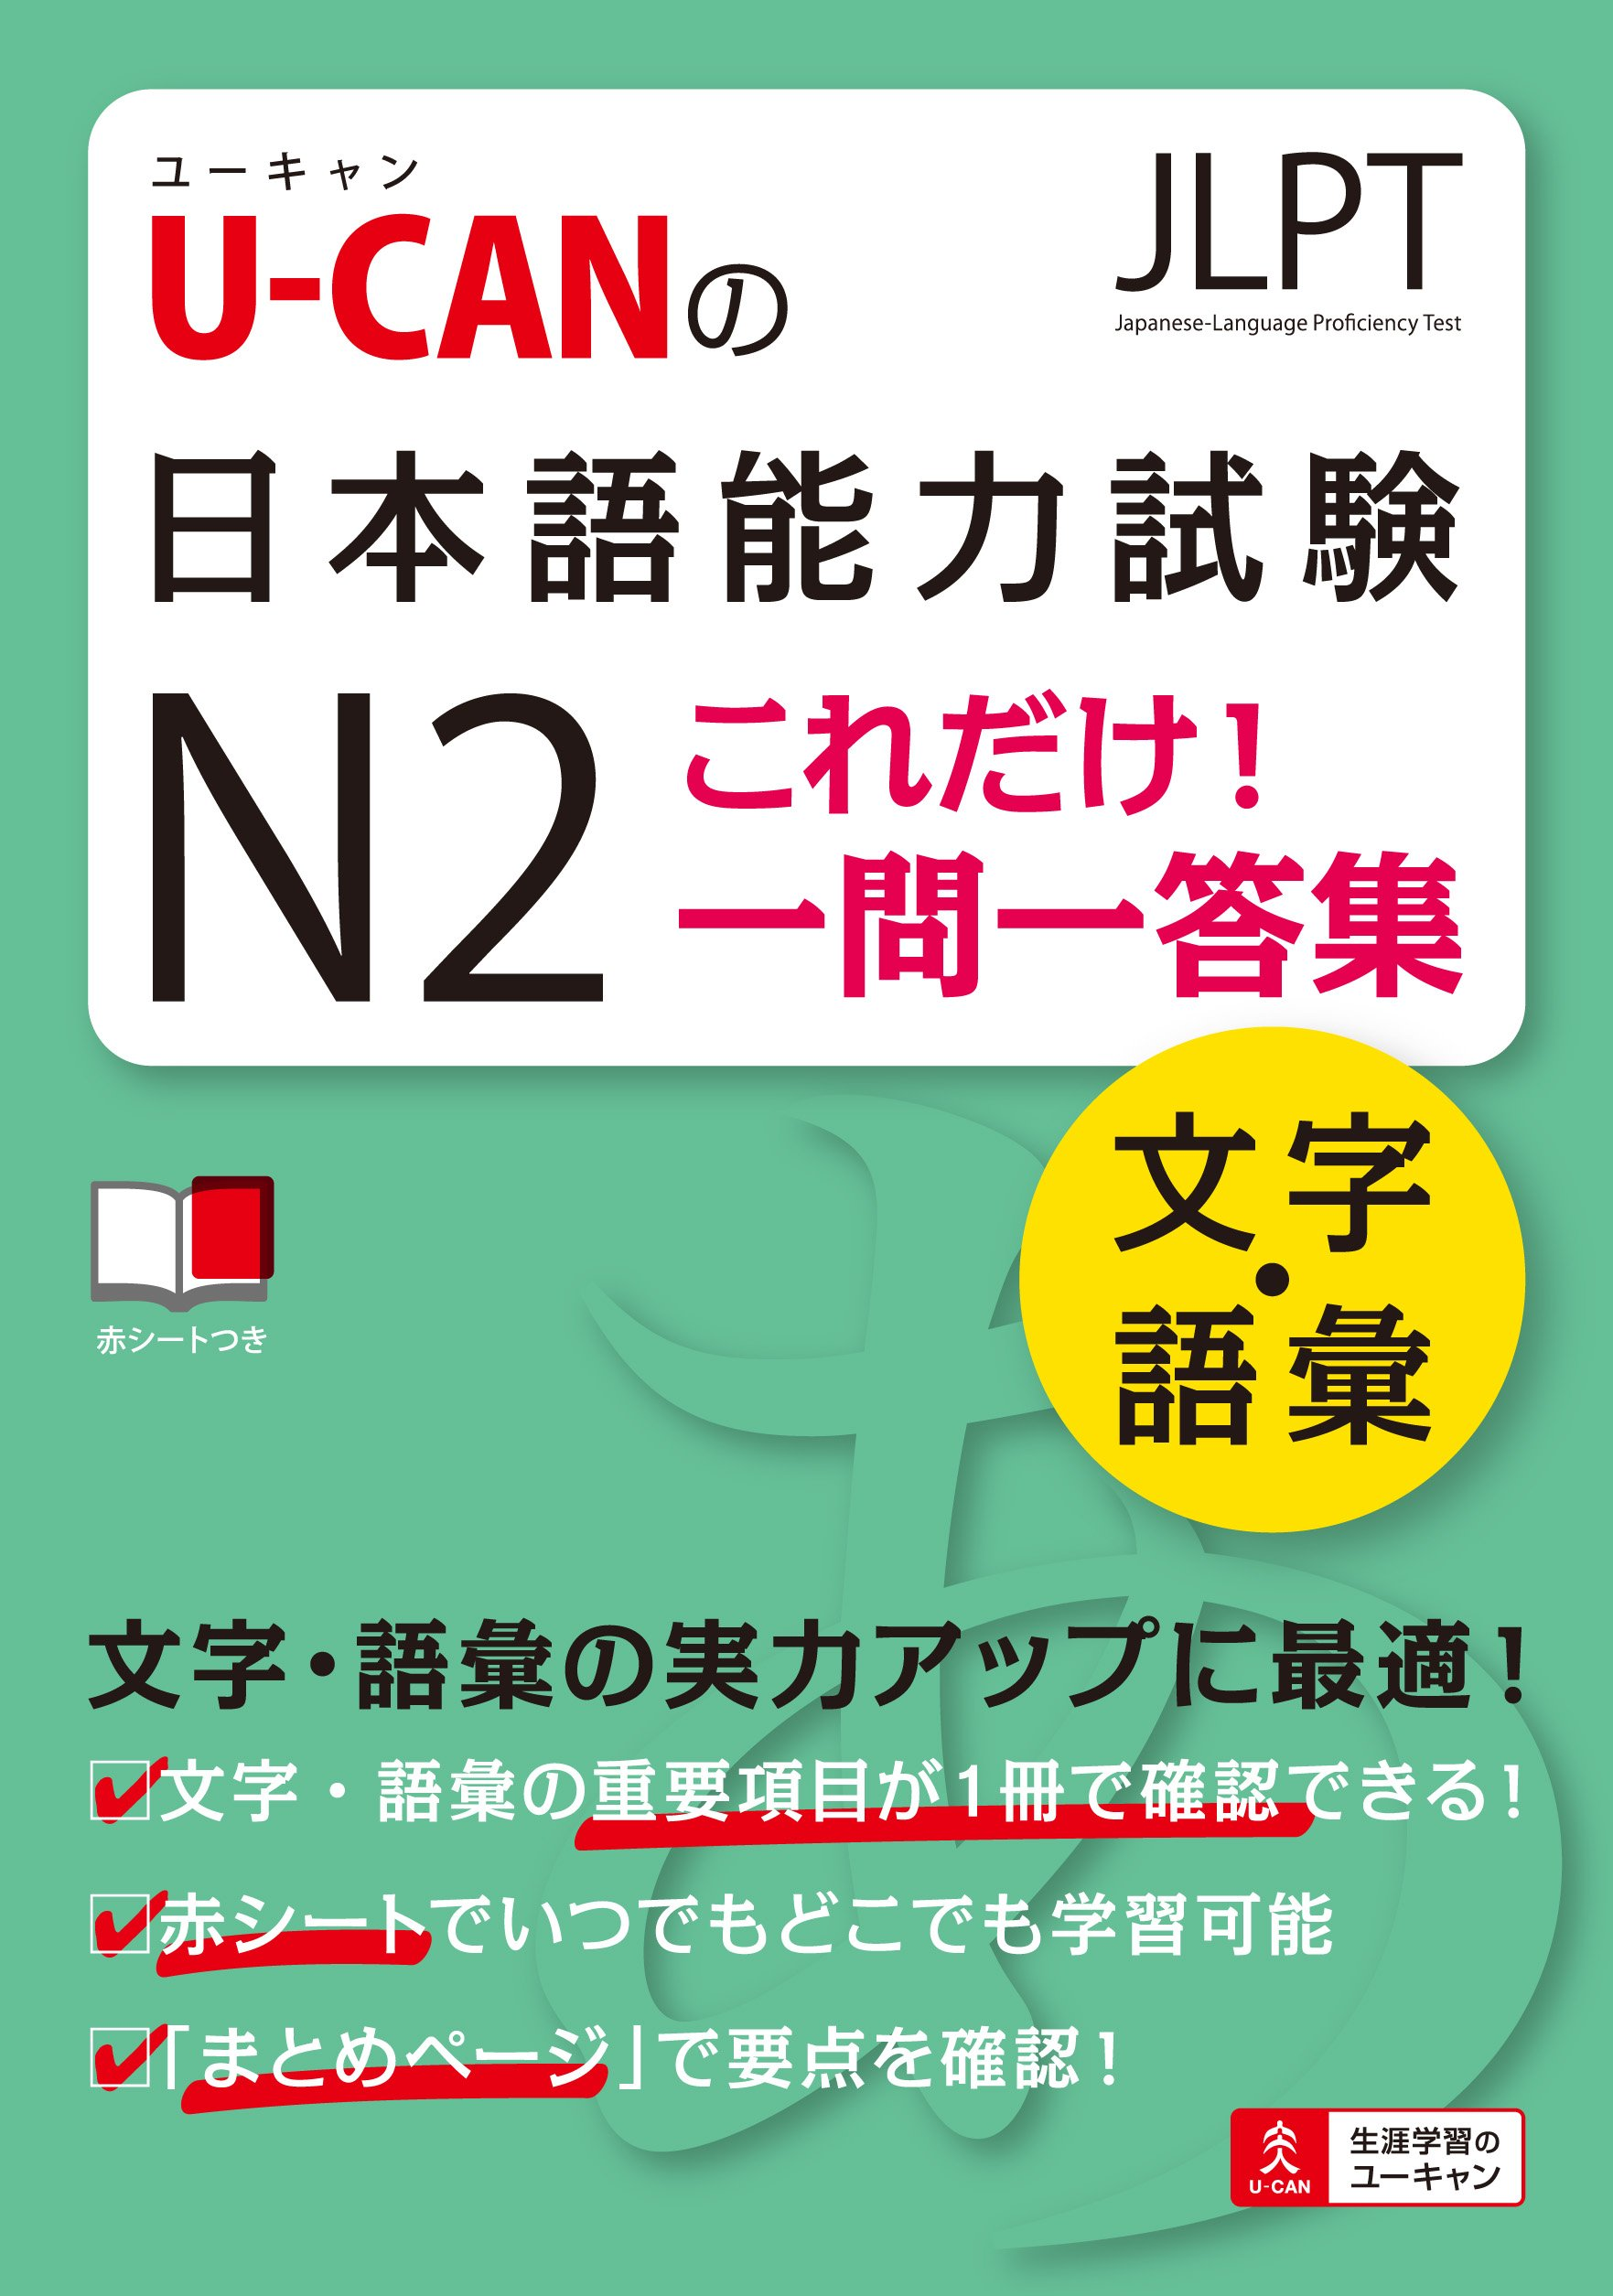 Only Japanese Language Proficiency Test N2 of this U-CAN! Exchange